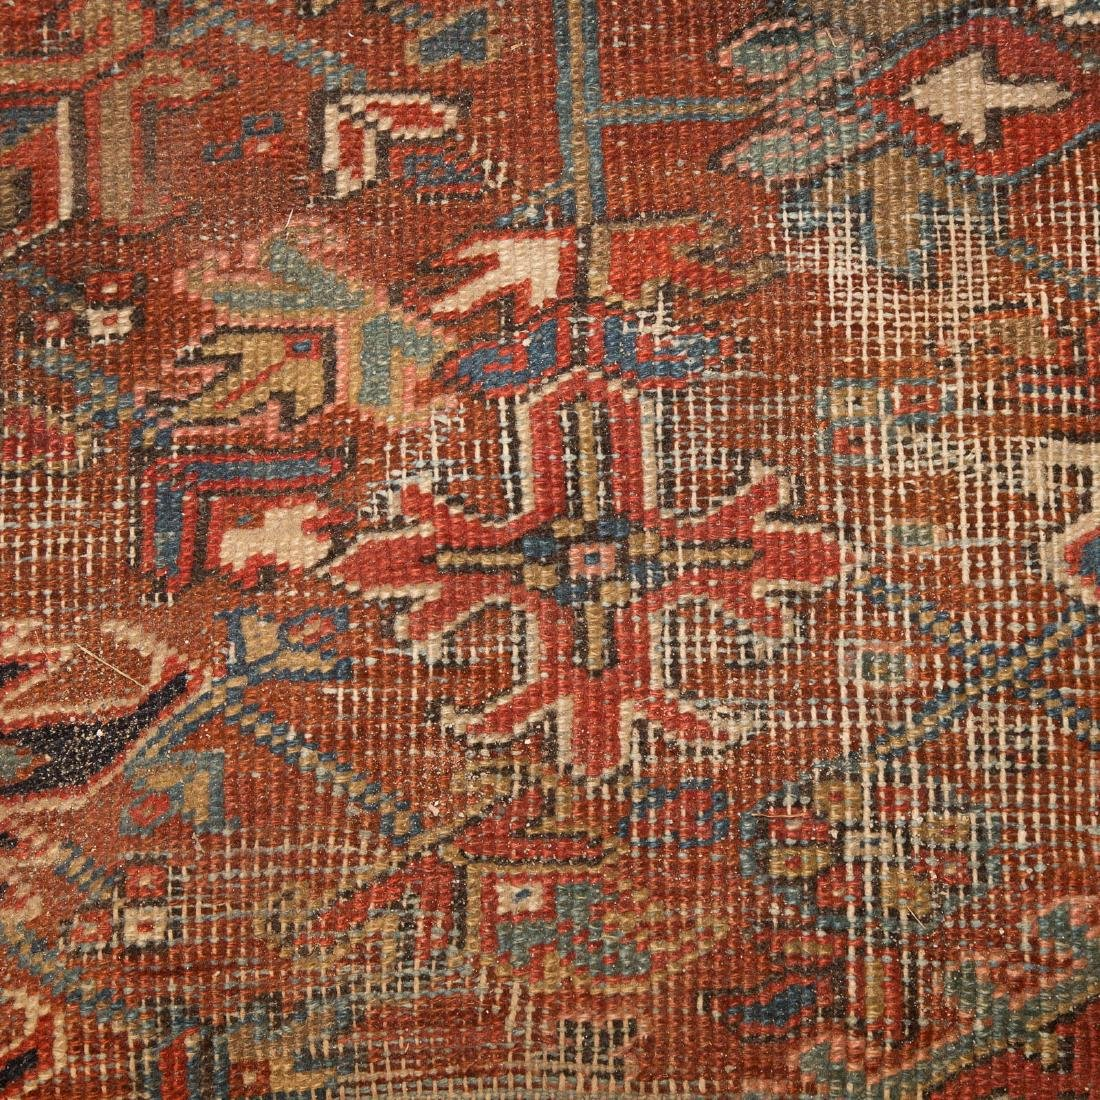 Persian Herez carpet, approx. 8.6 x 12.3 - 4